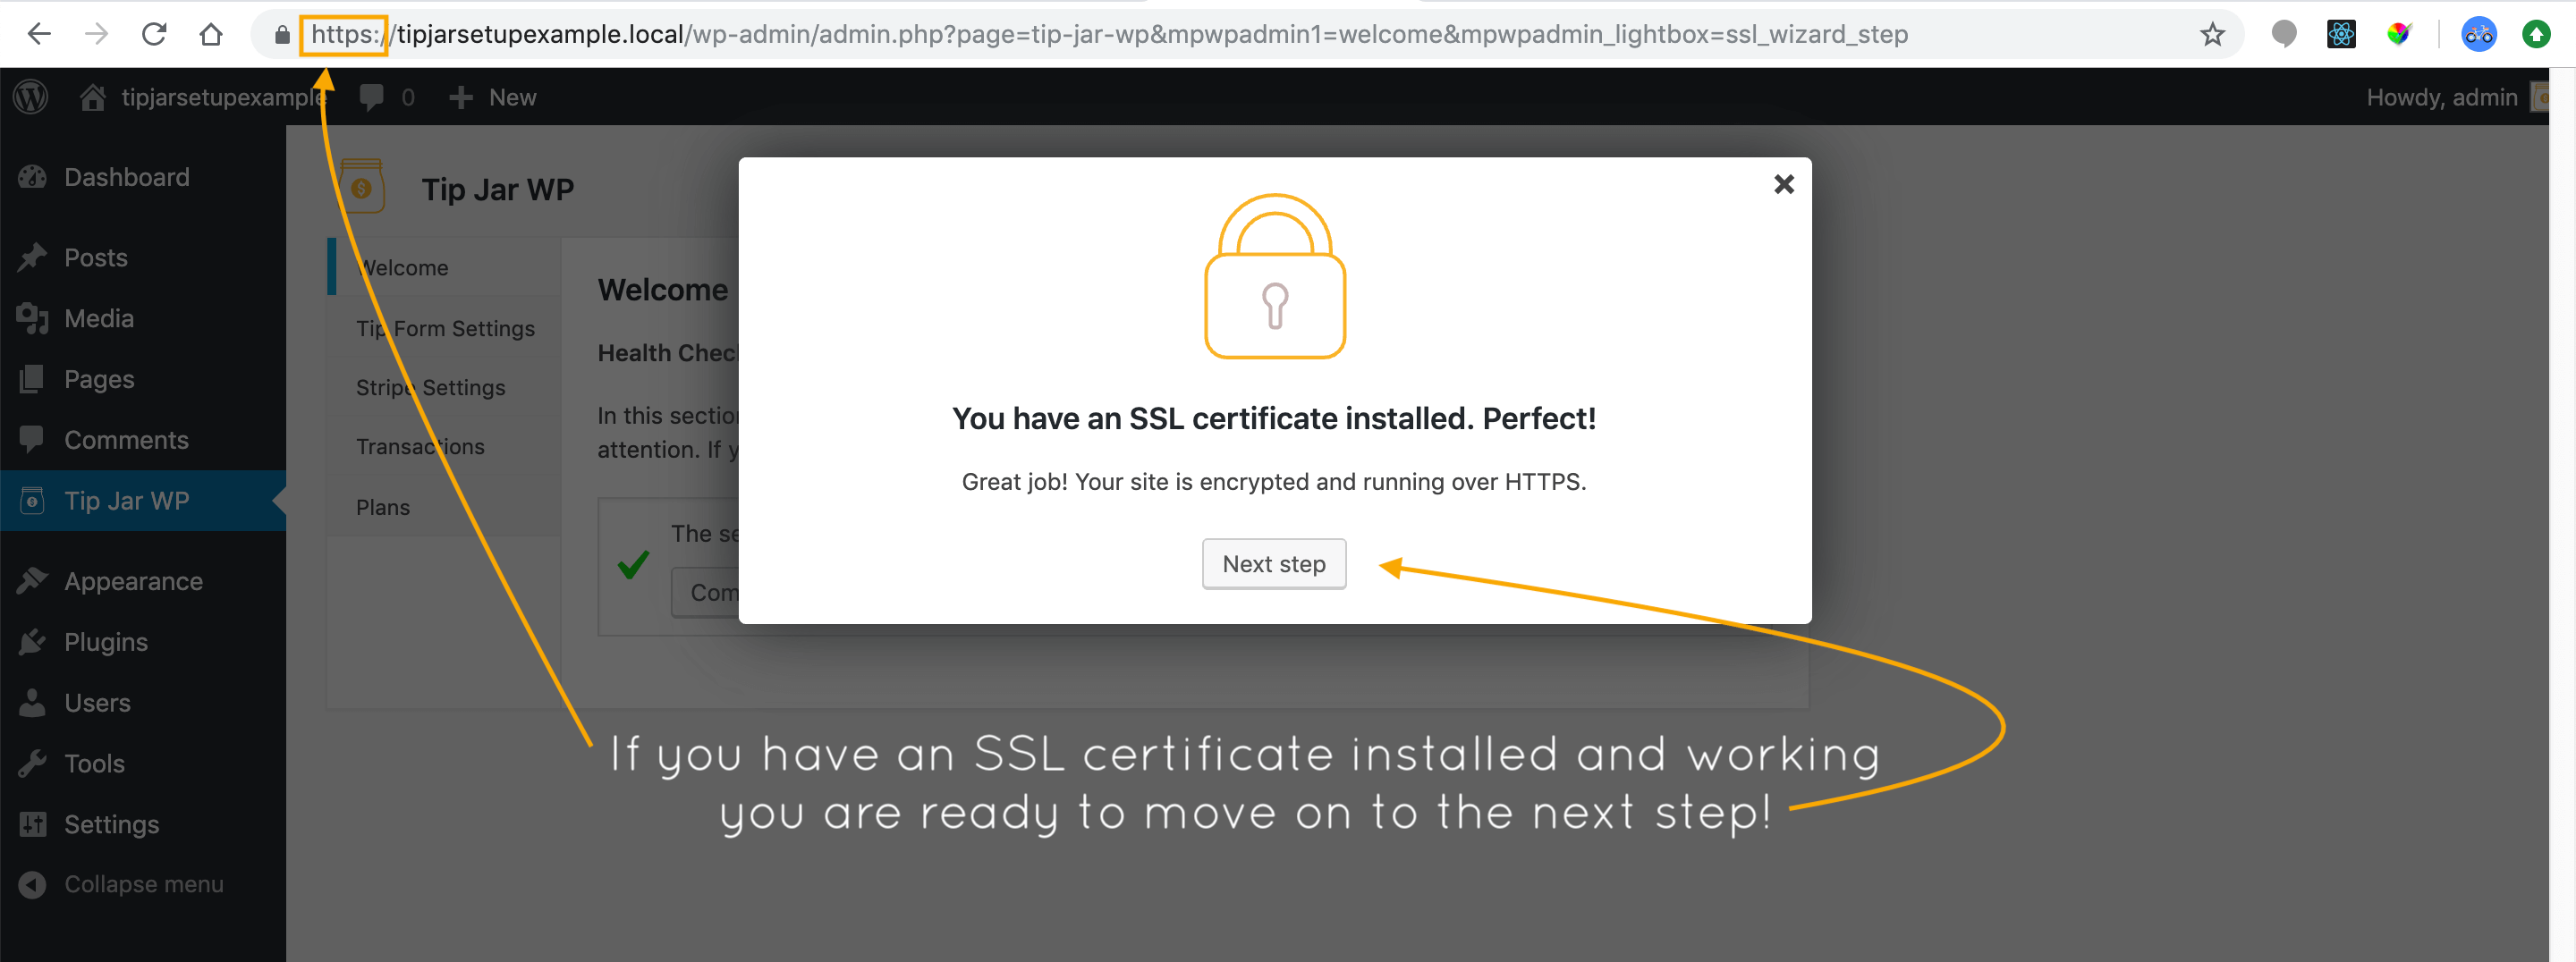 If/when you have an SSL certificate installed and working, you will be able to move to the next step!